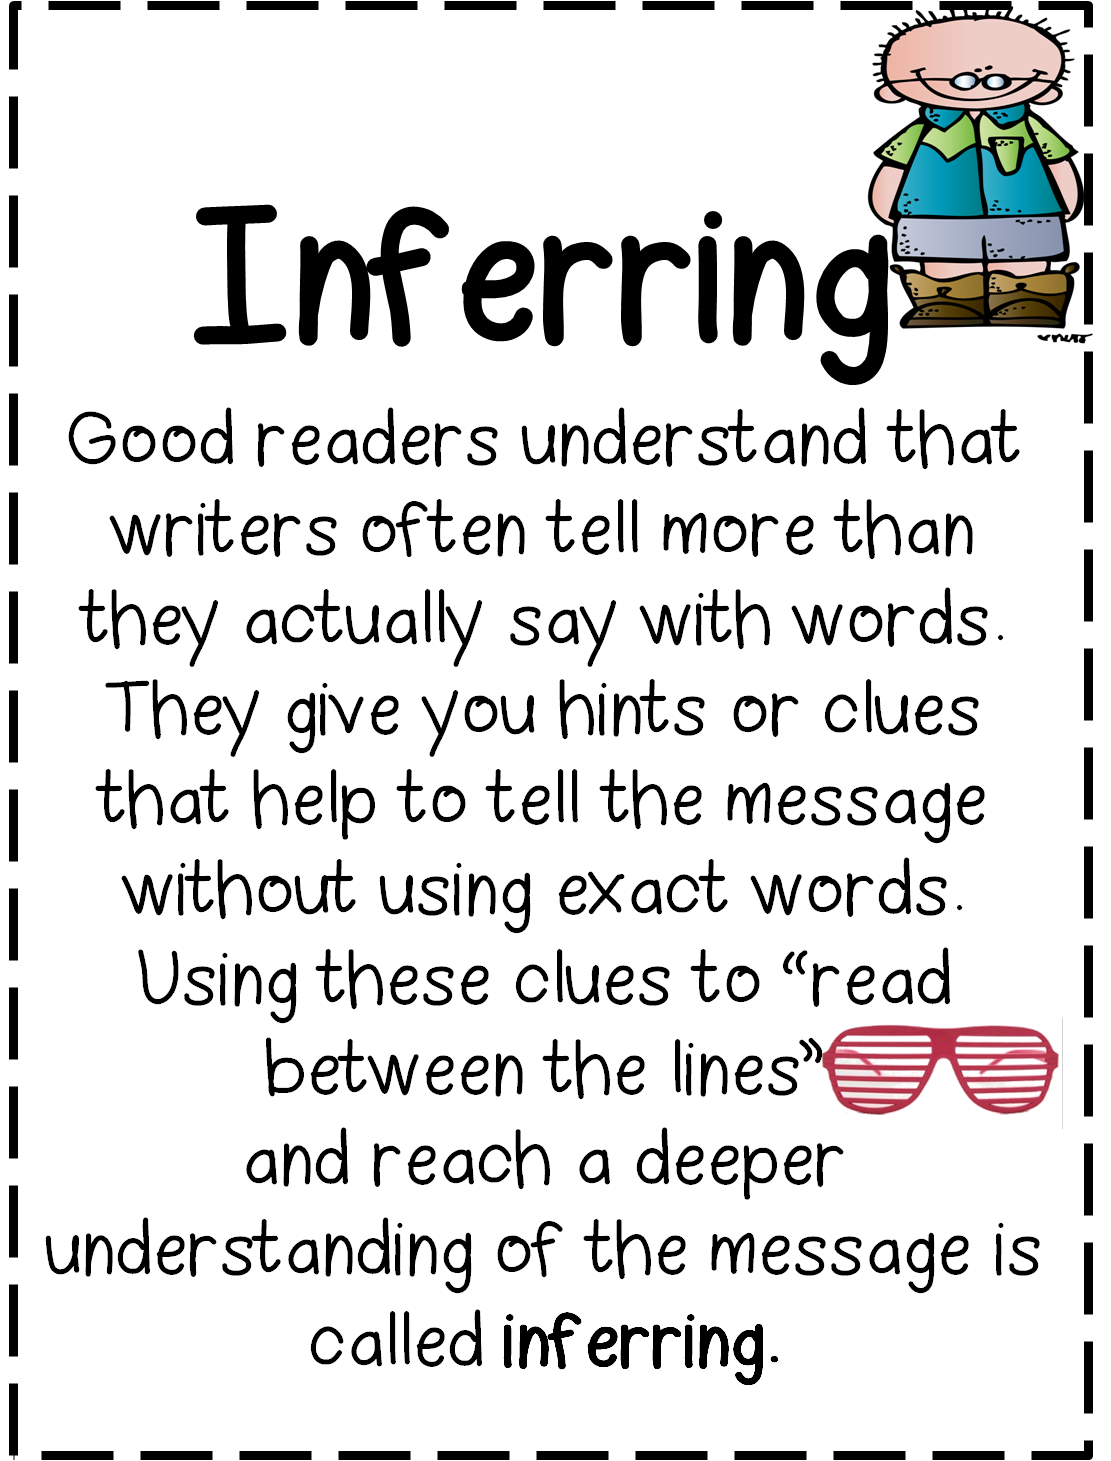 how to teach children to make infereences when reading